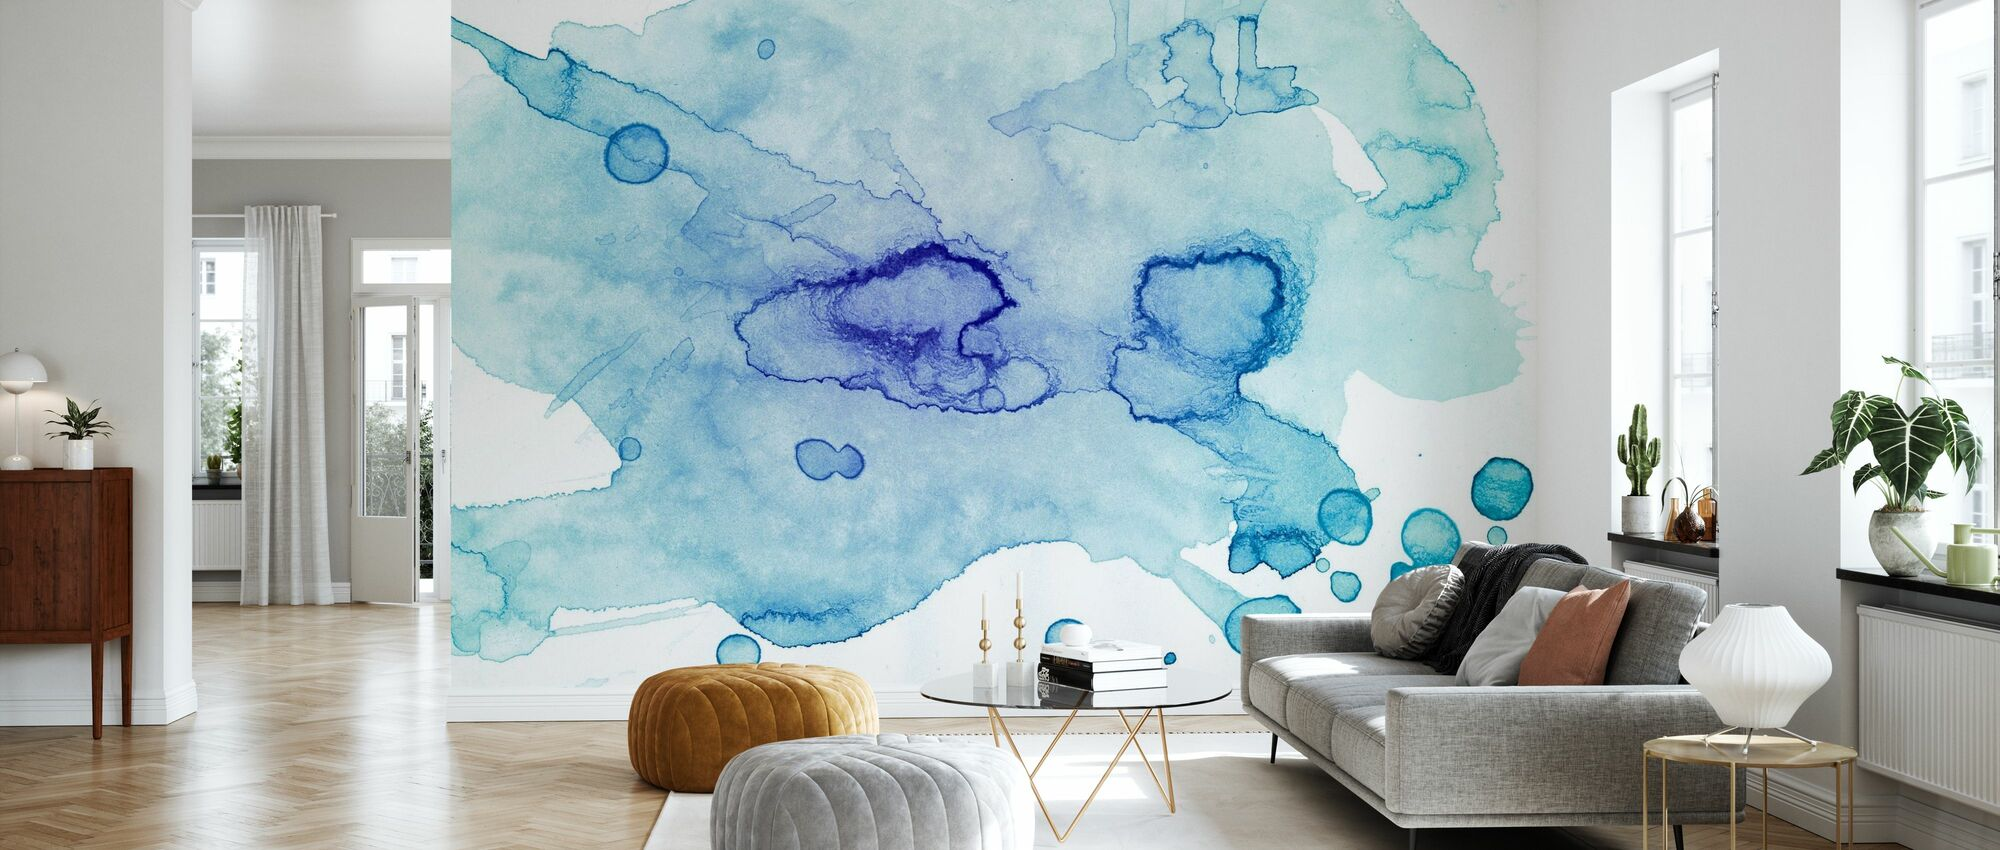 Colour Puddle - Wallpaper - Living Room